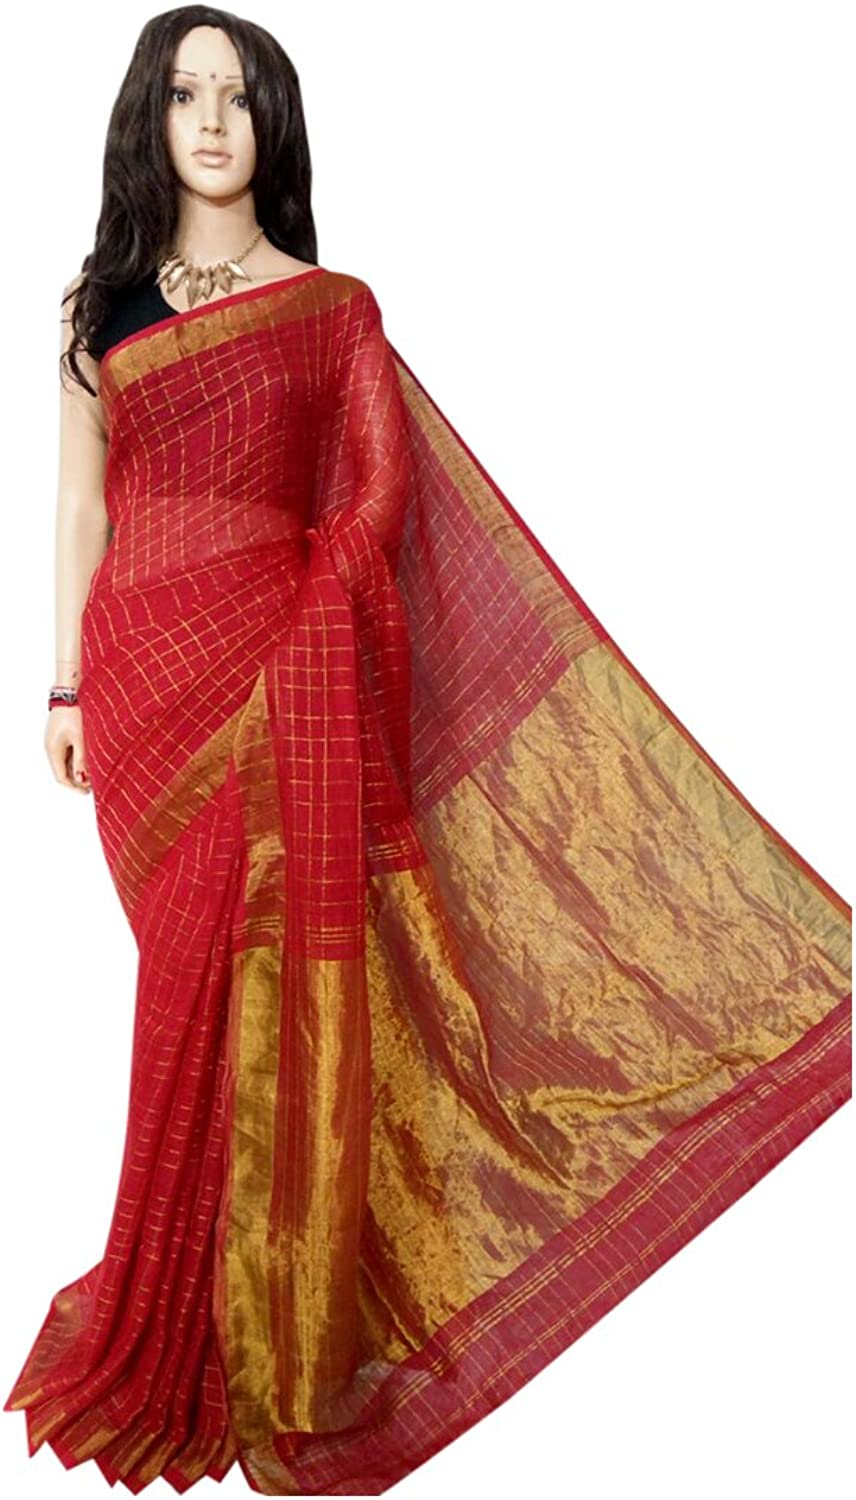 Linen by linen 80 count Saree Full weaving work by weavers traditional handoom Bengal Women sari Indian Ethnic Festive saree 108 2